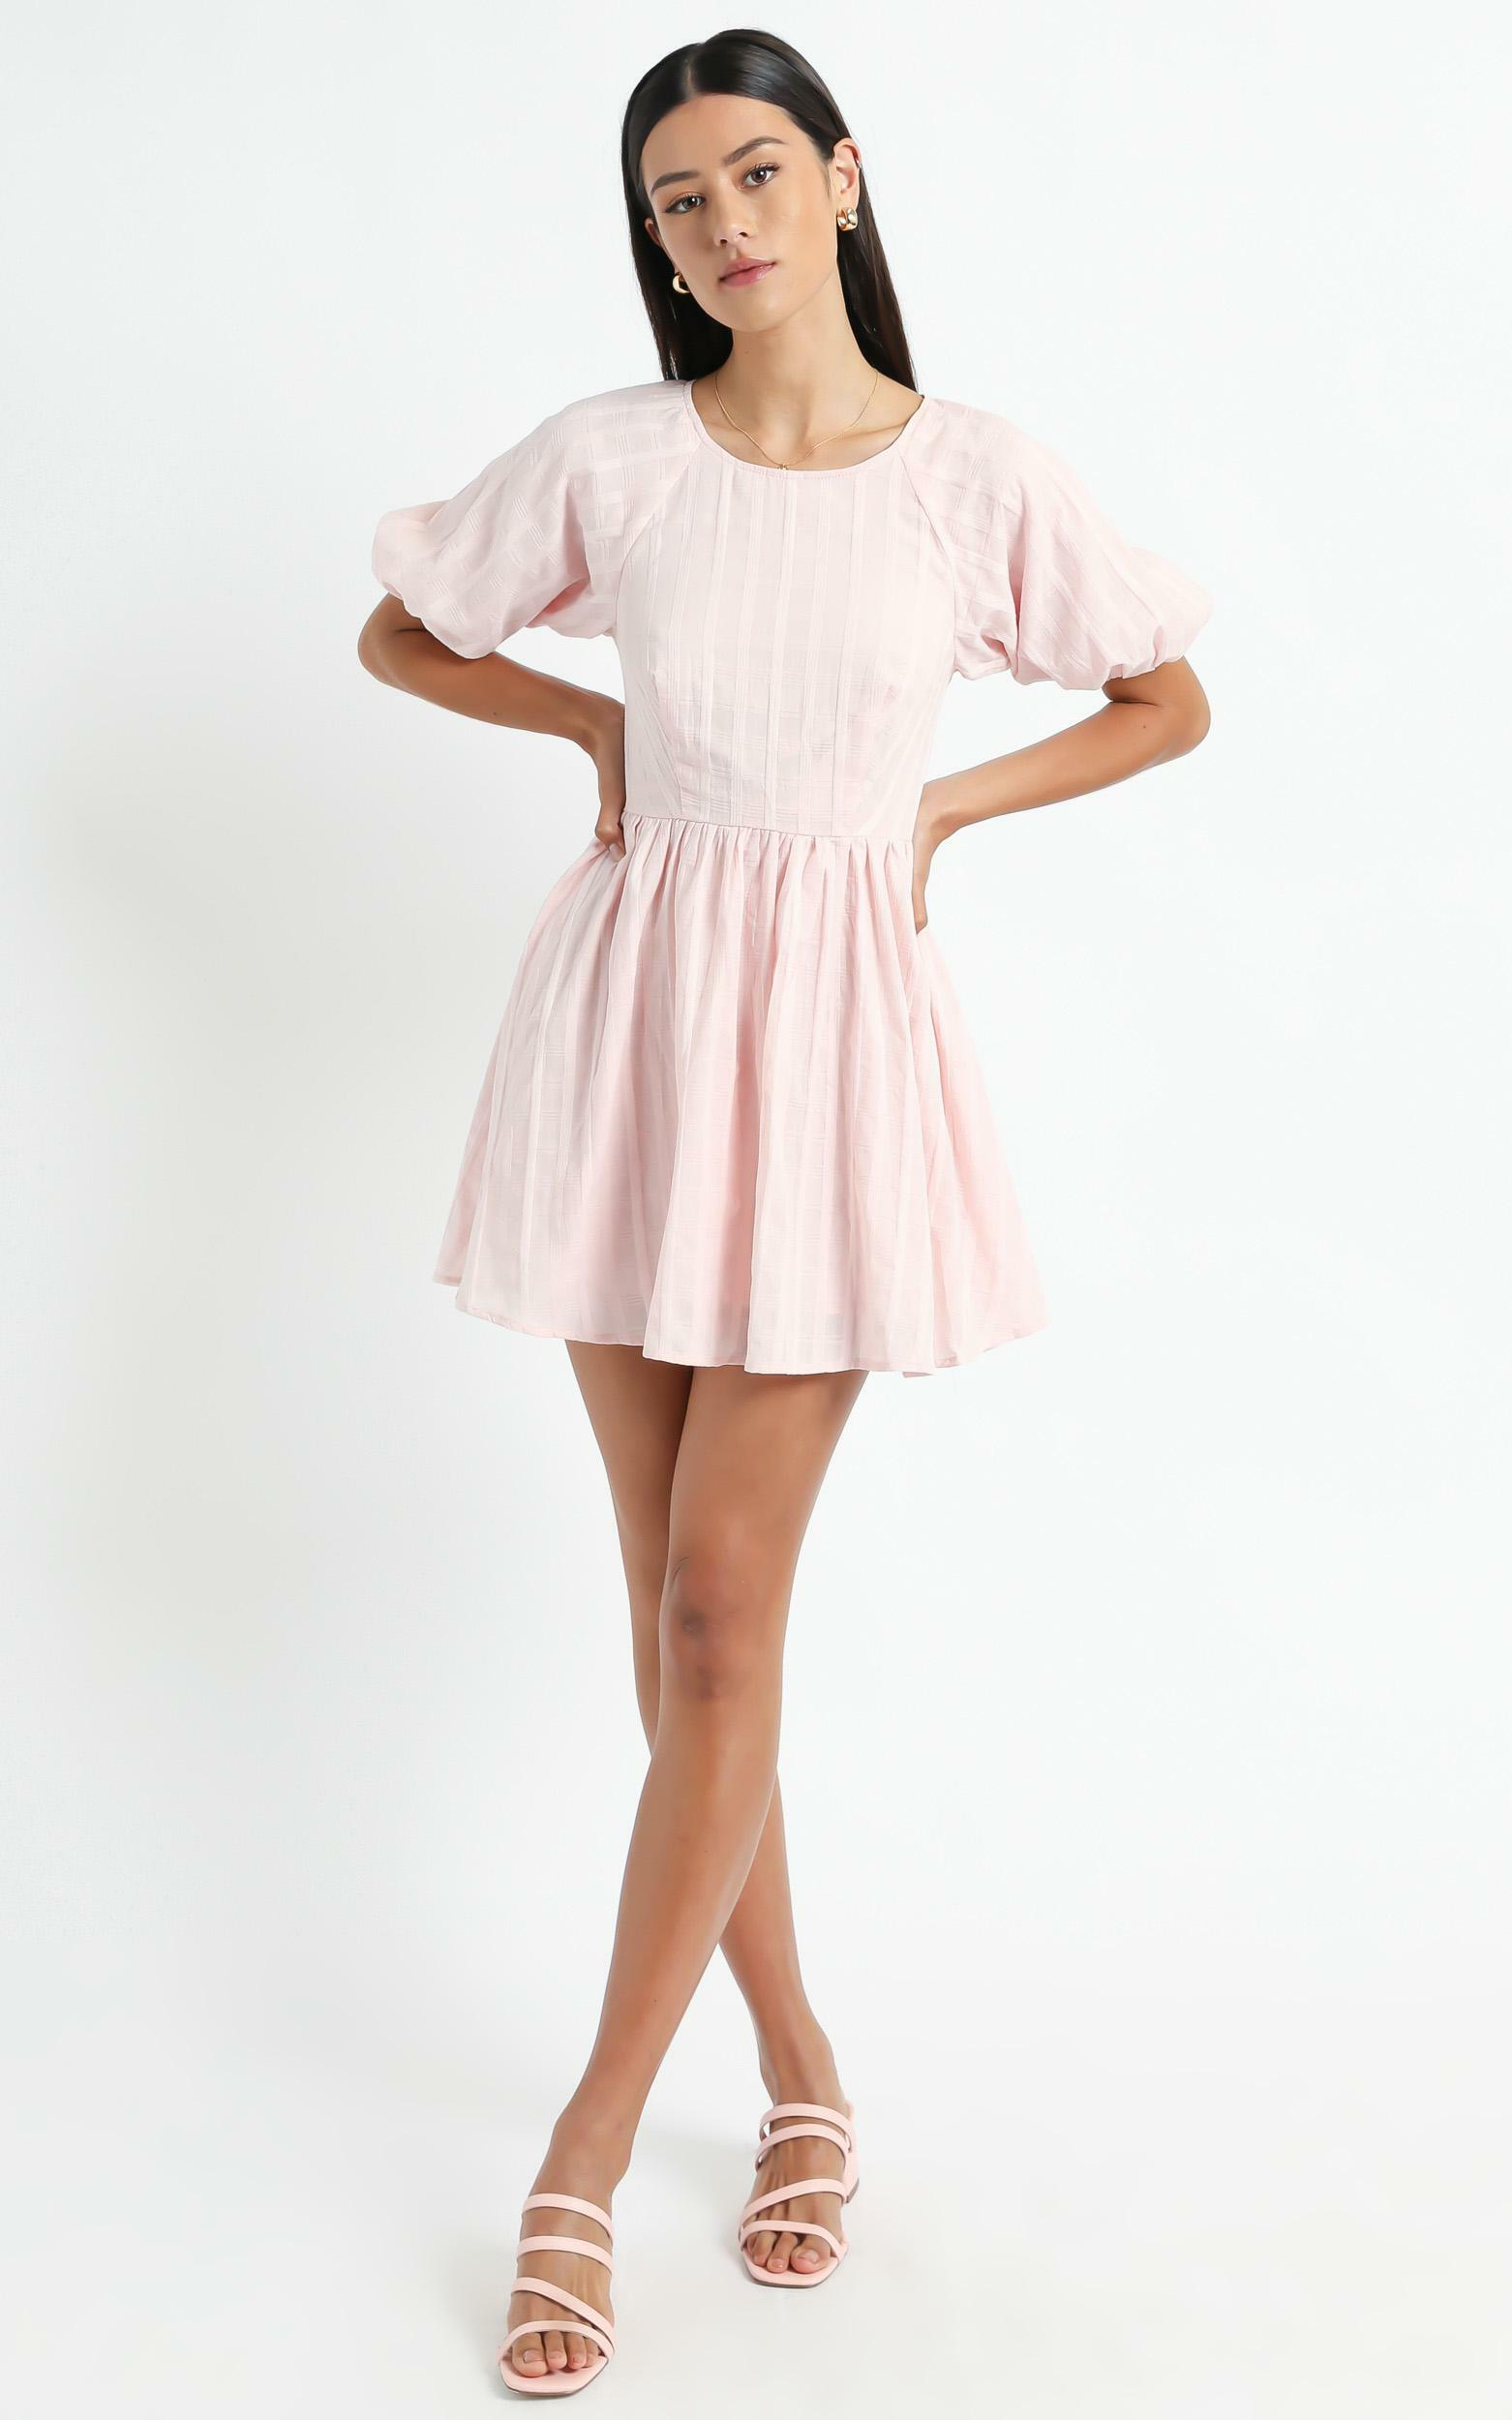 Cherie Dress in Blush - 06, PNK1, hi-res image number null